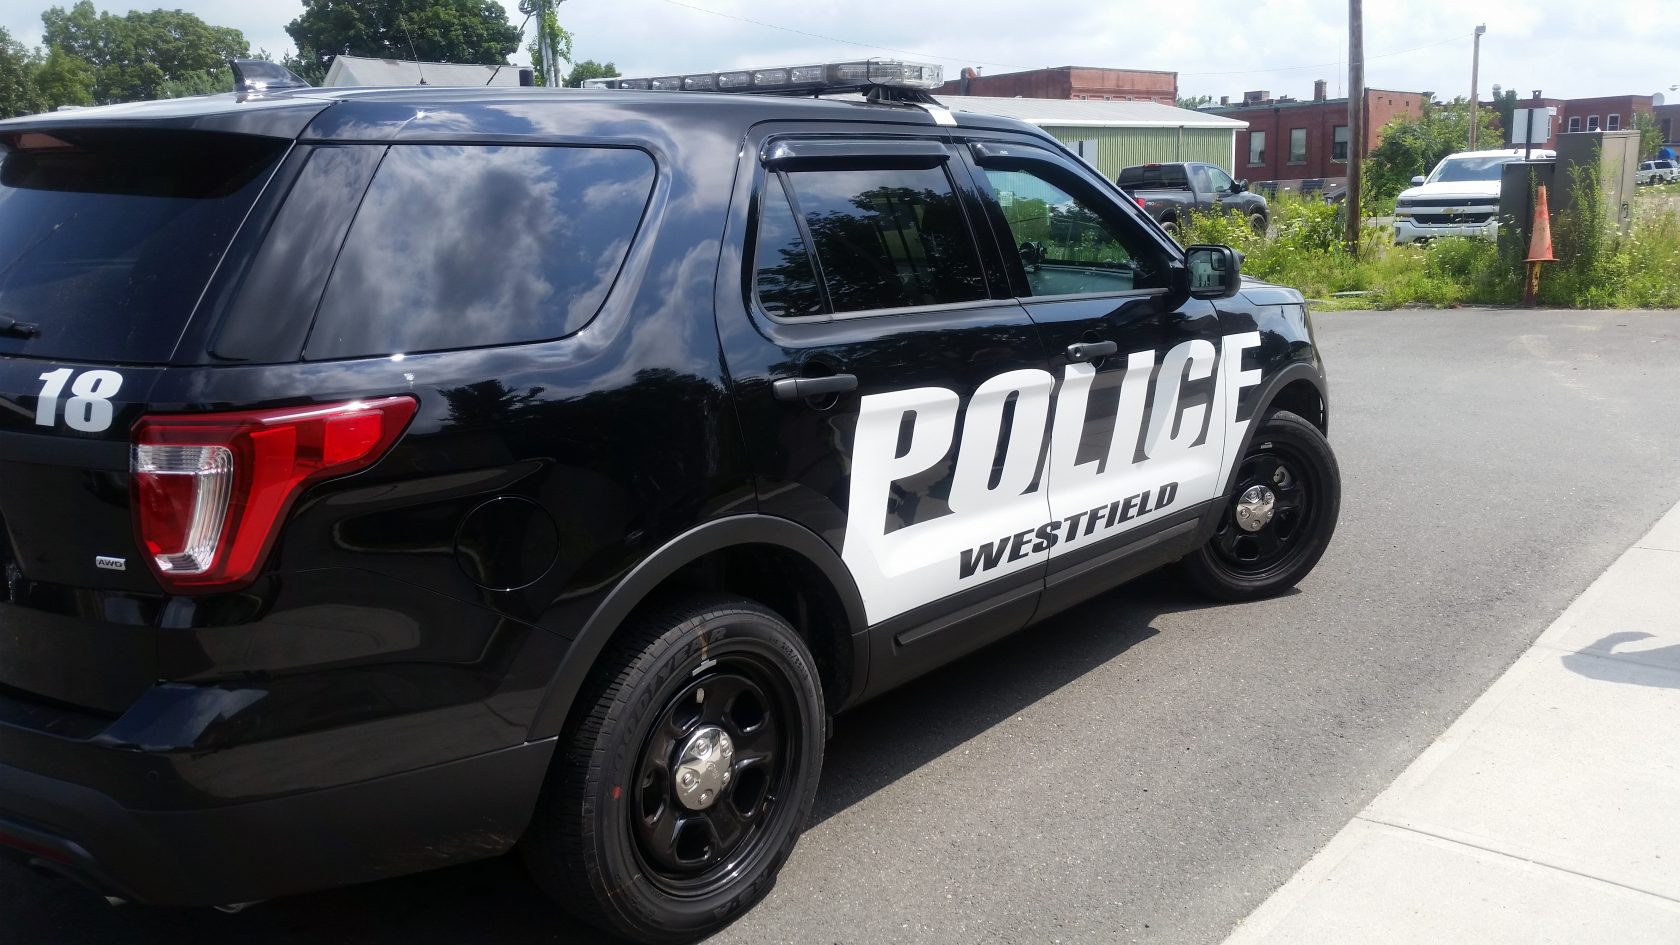 Westfield Police may receive several replacement vehicles